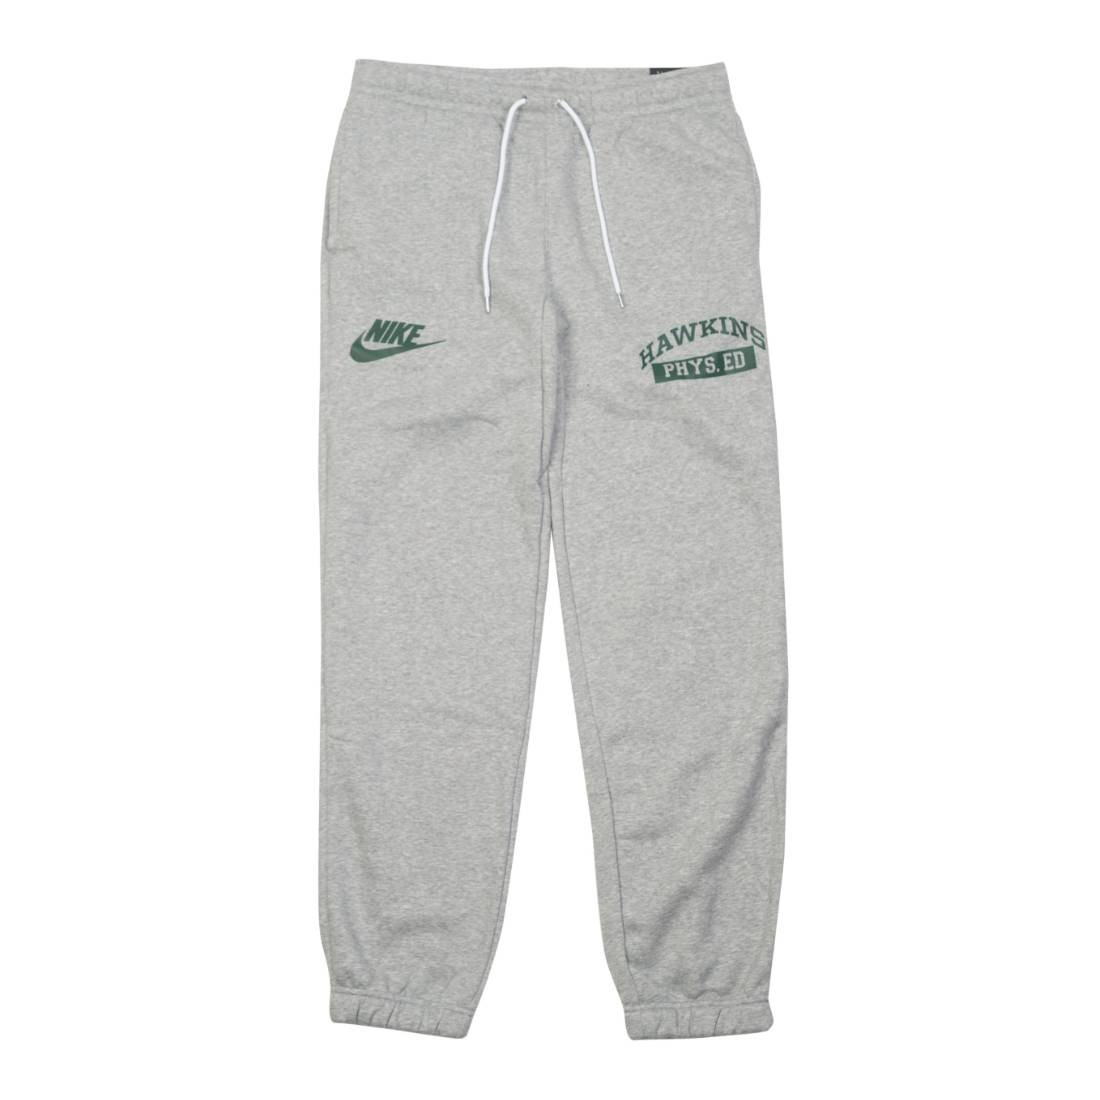 Nike x Stranger Things Men Hawkins High Pants (dk grey heather / white / fir)